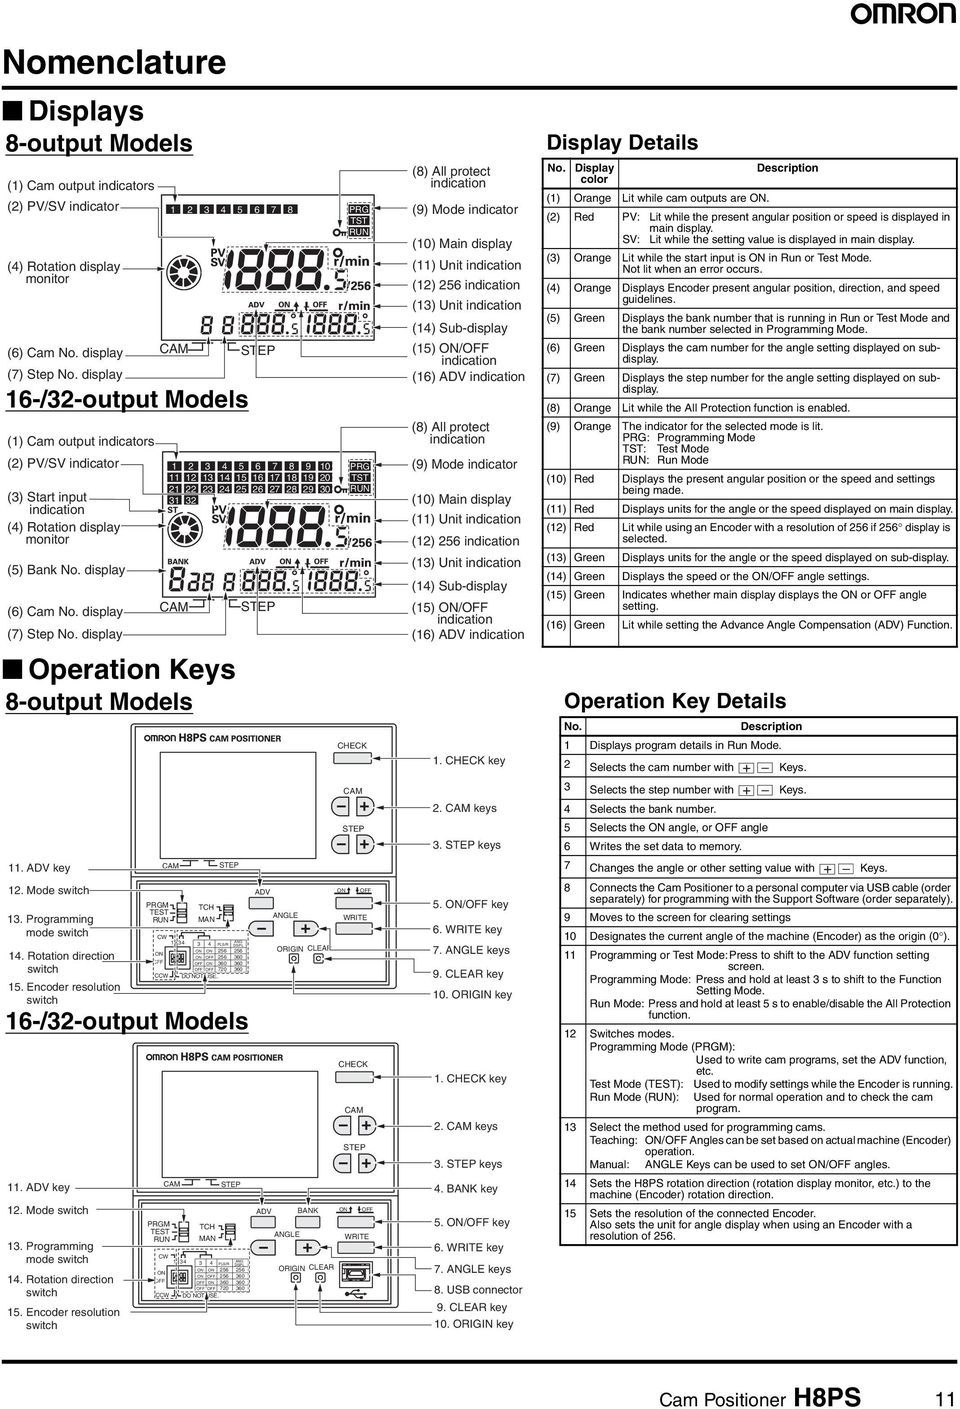 display Operation Keys 1 2 3 4 5 6 7 8 TST 8-output Models 11. ADV key 12. Mode switch 13. Programming mode switch 14. Rotation direction switch 15. Encoder resolution switch 16-/32-output Models 11.